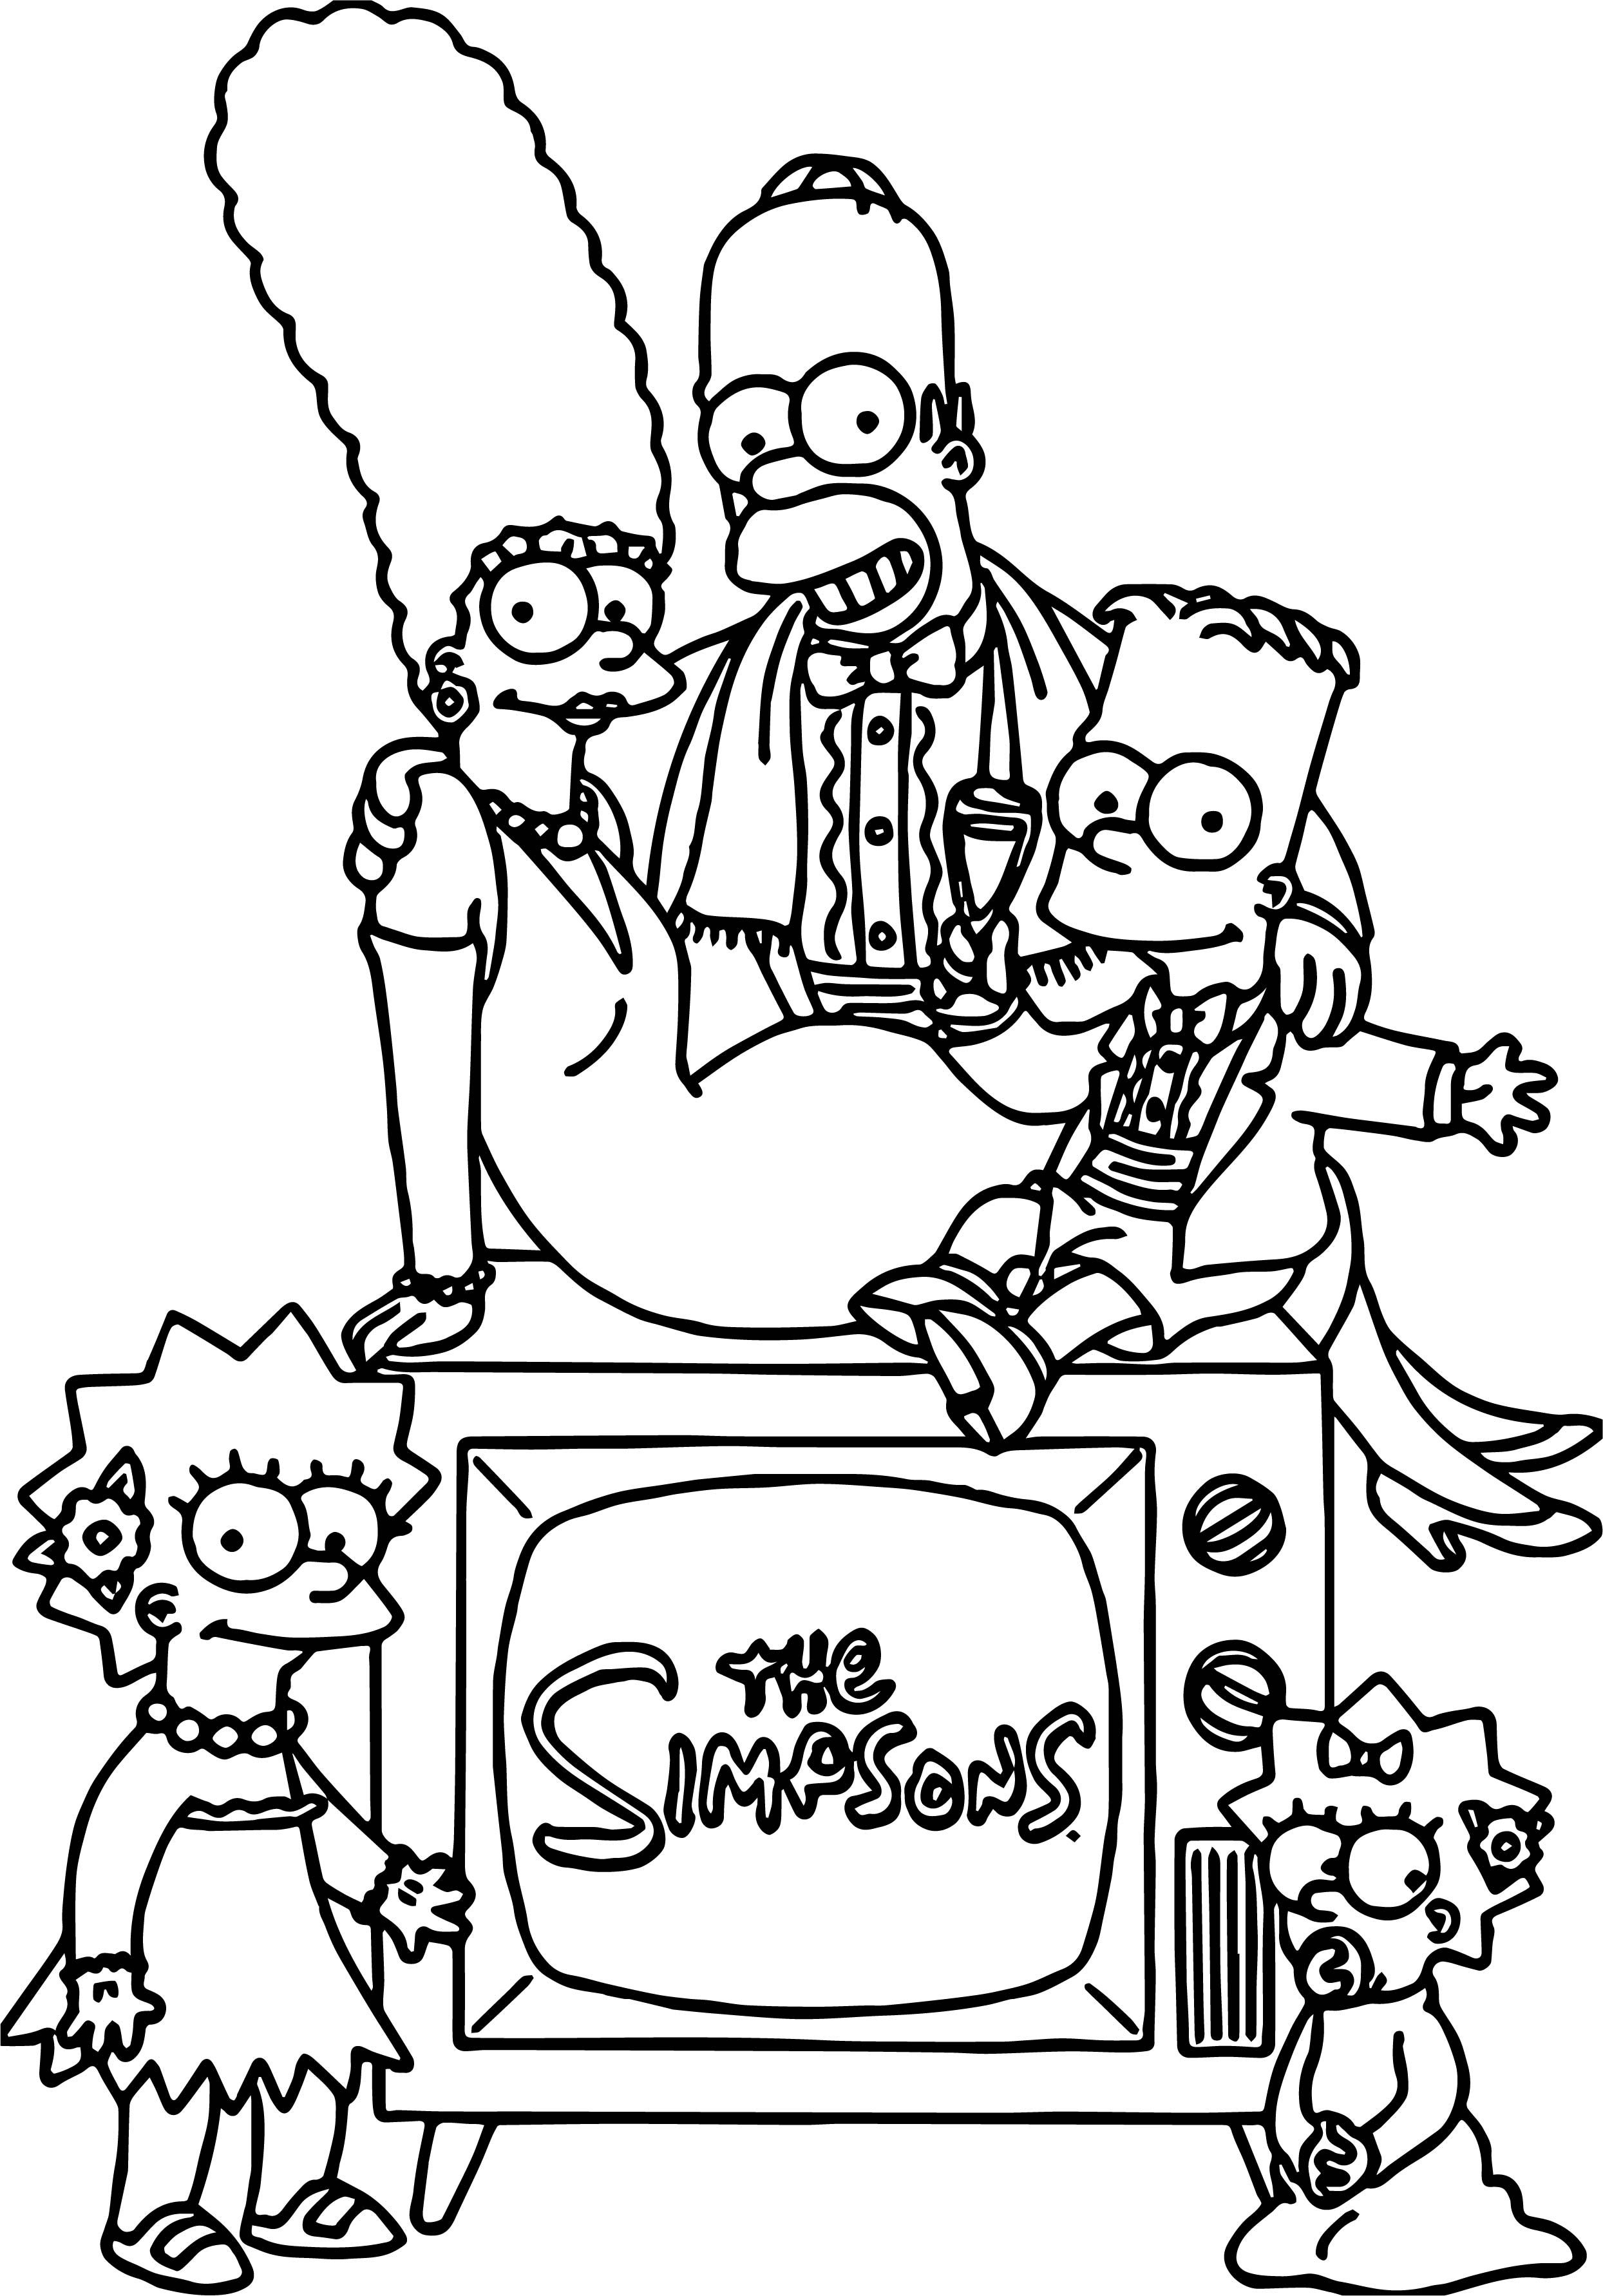 Awesome Simpsons Coloring Page Simpsons Drawings Family Coloring Pages Coloring Books